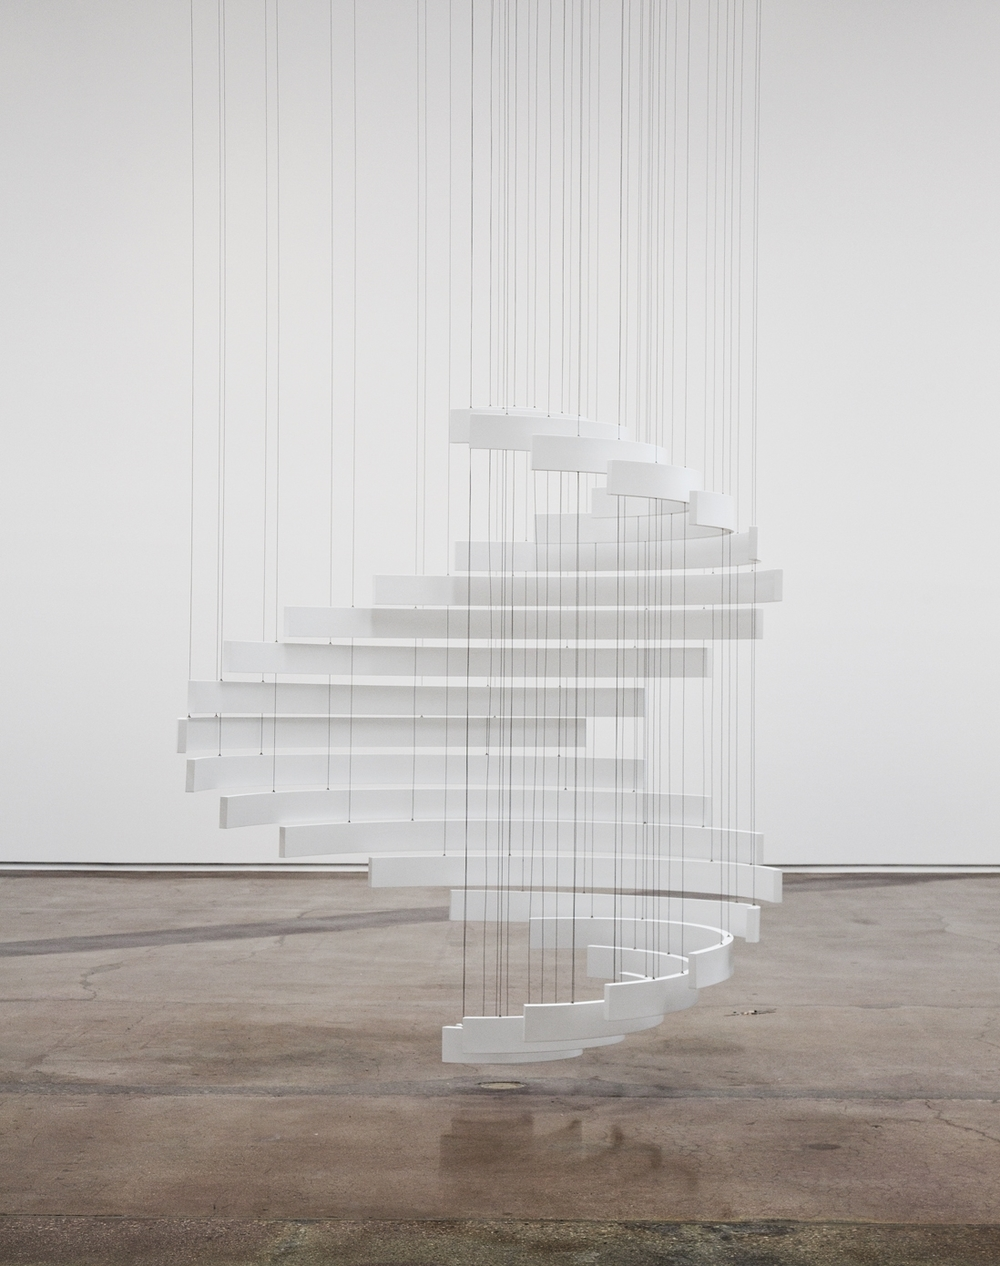 """Troika, """"The Sum of All Possibilities,"""" 2014, Suspended sculpture (steel, aluminum, painted wood), 59 x 59 x 106 1/4 inches"""